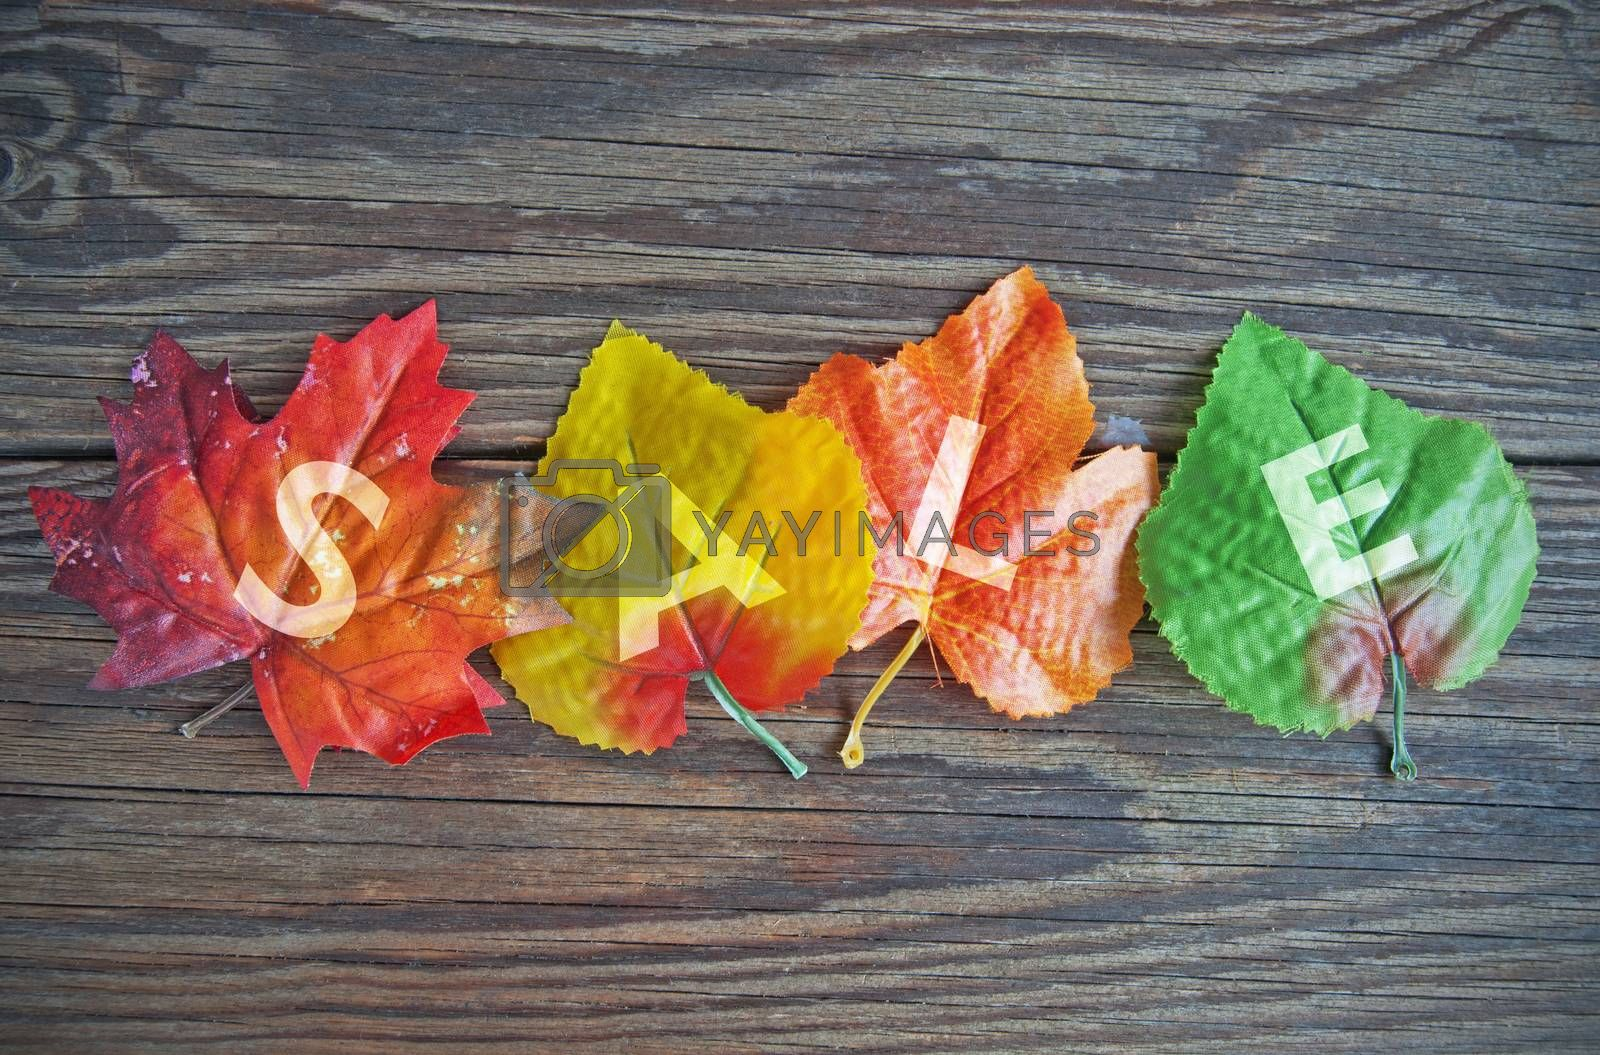 Autumn leaves with sale sign on wood